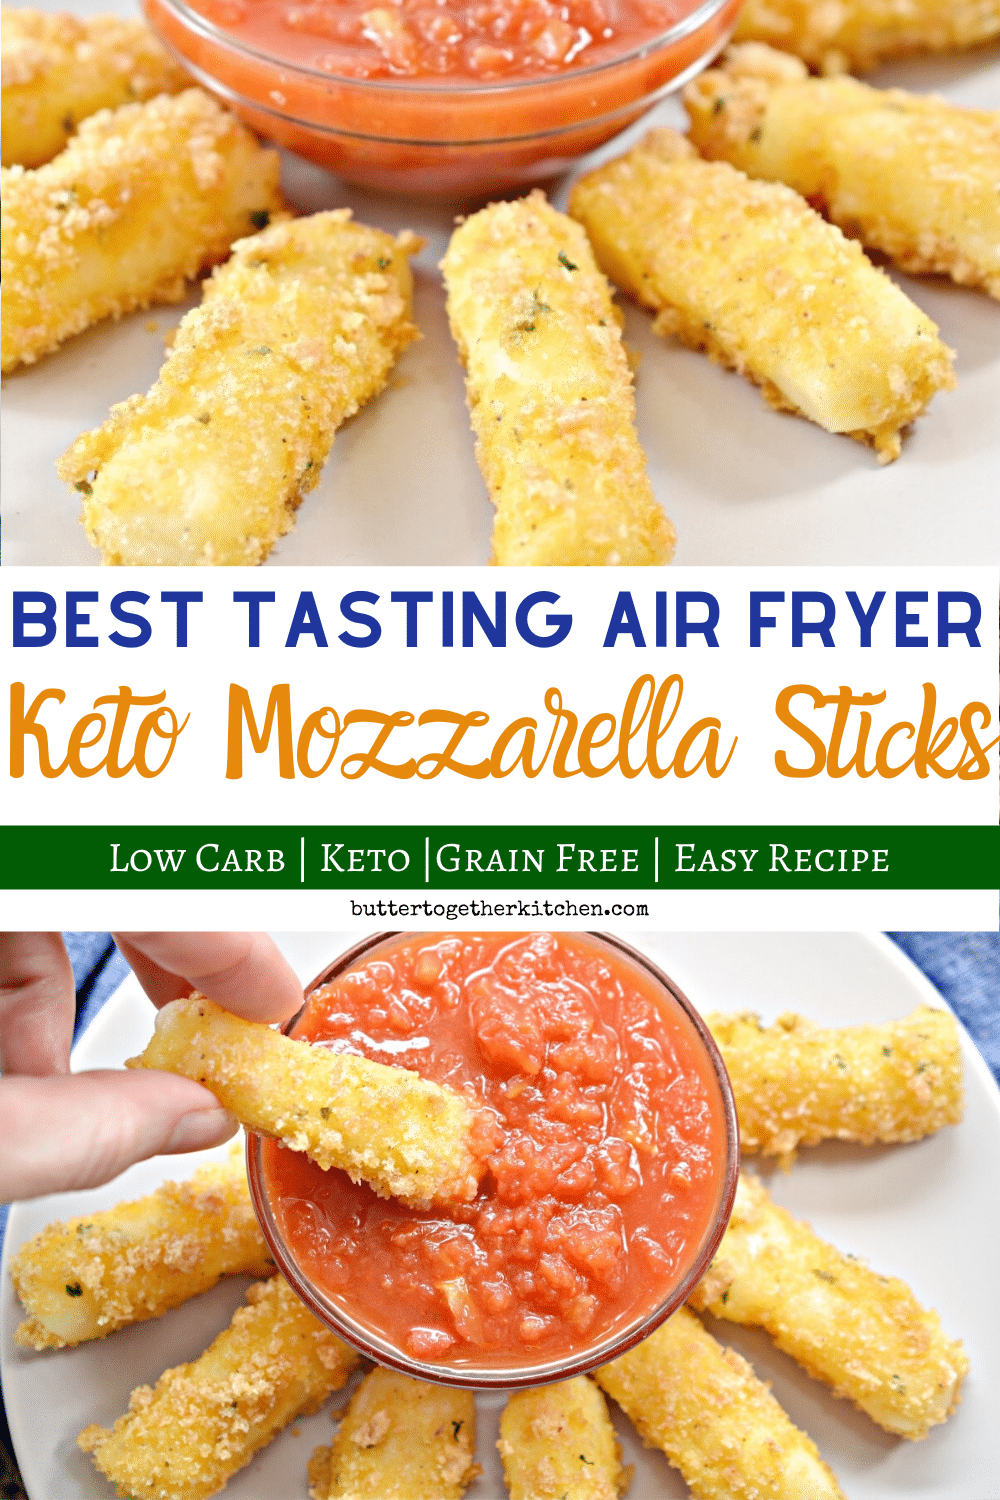 Keto Air Fryer Recipes Mozzarella Sticks